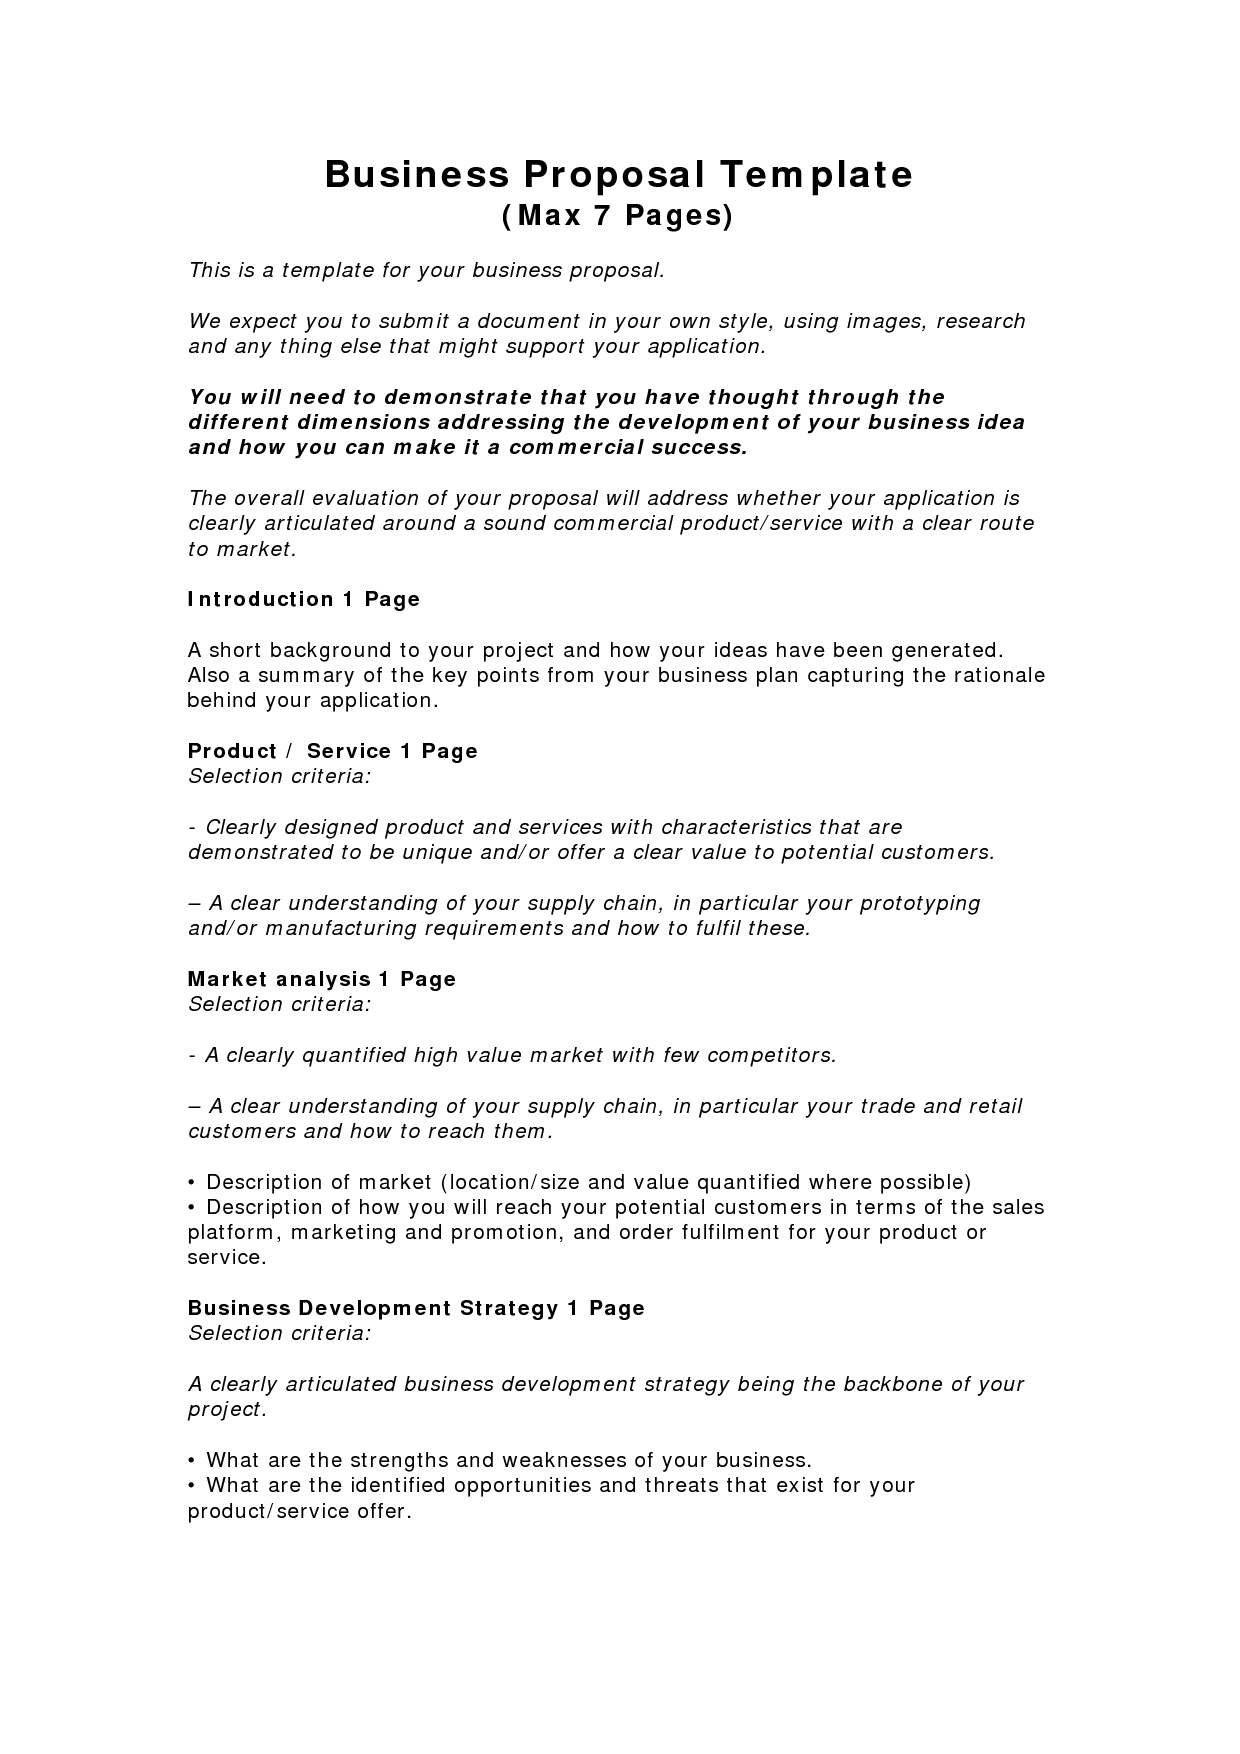 Business Proposal Templates Examples  Business Proposal Template Throughout How To Write A Business Proposal Template